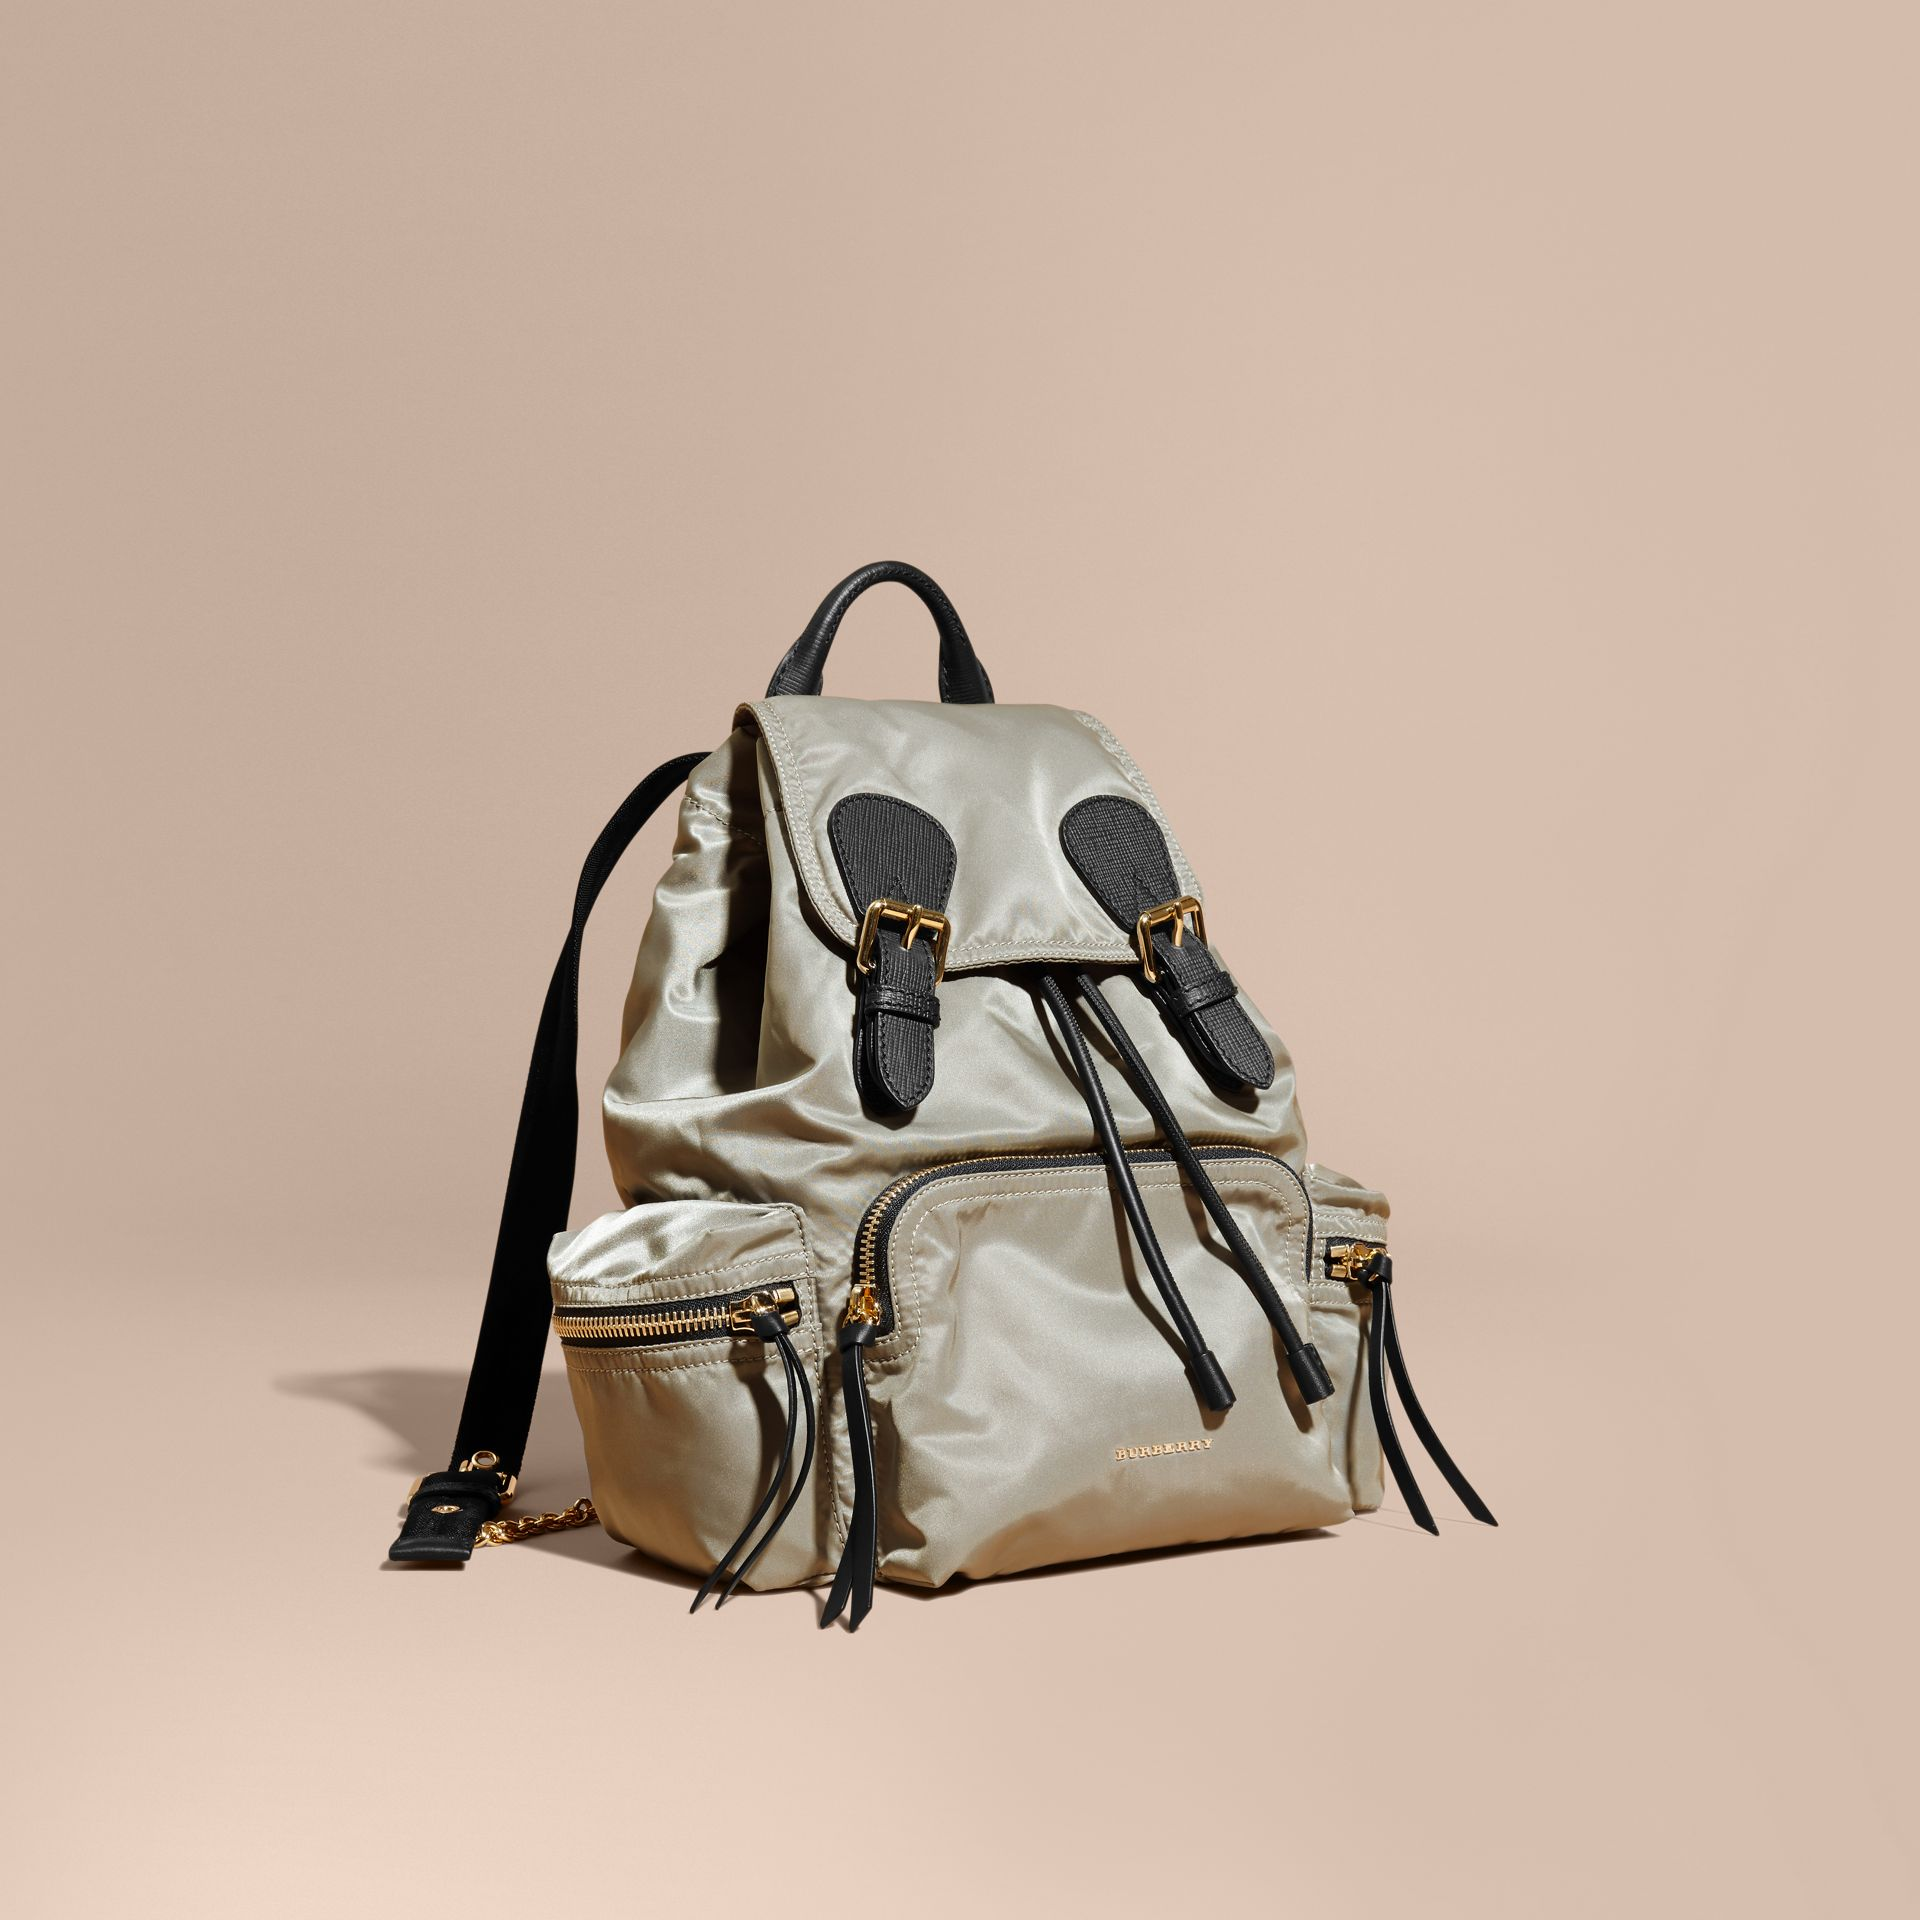 Thistle grey The Medium Rucksack in Technical Nylon and Leather Thistle Grey - gallery image 1